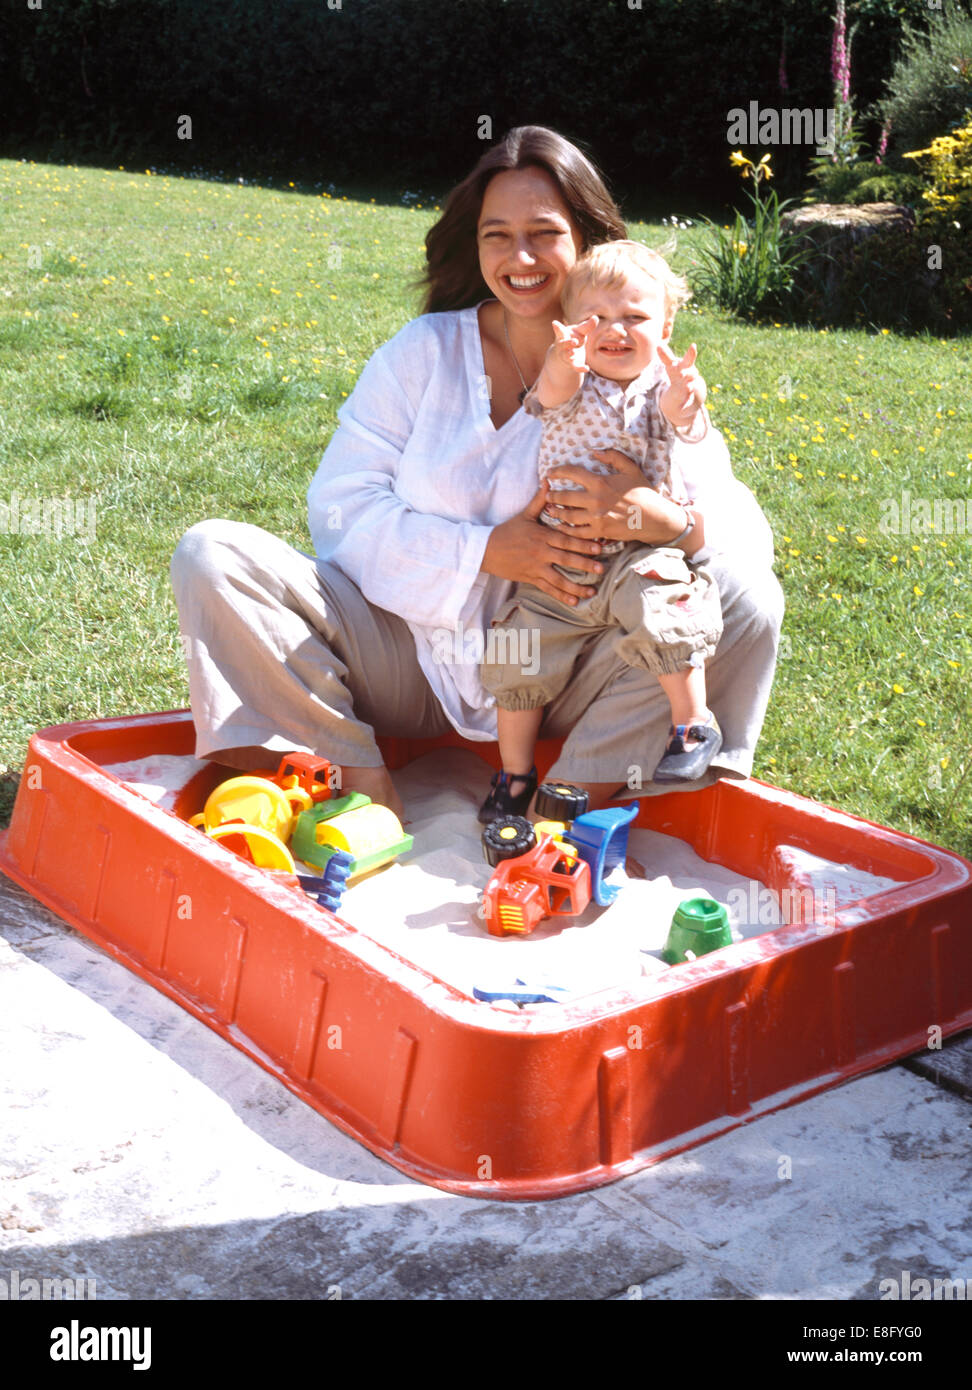 Portrait of a young mother and toddler sitting in a sandbox - Stock Image